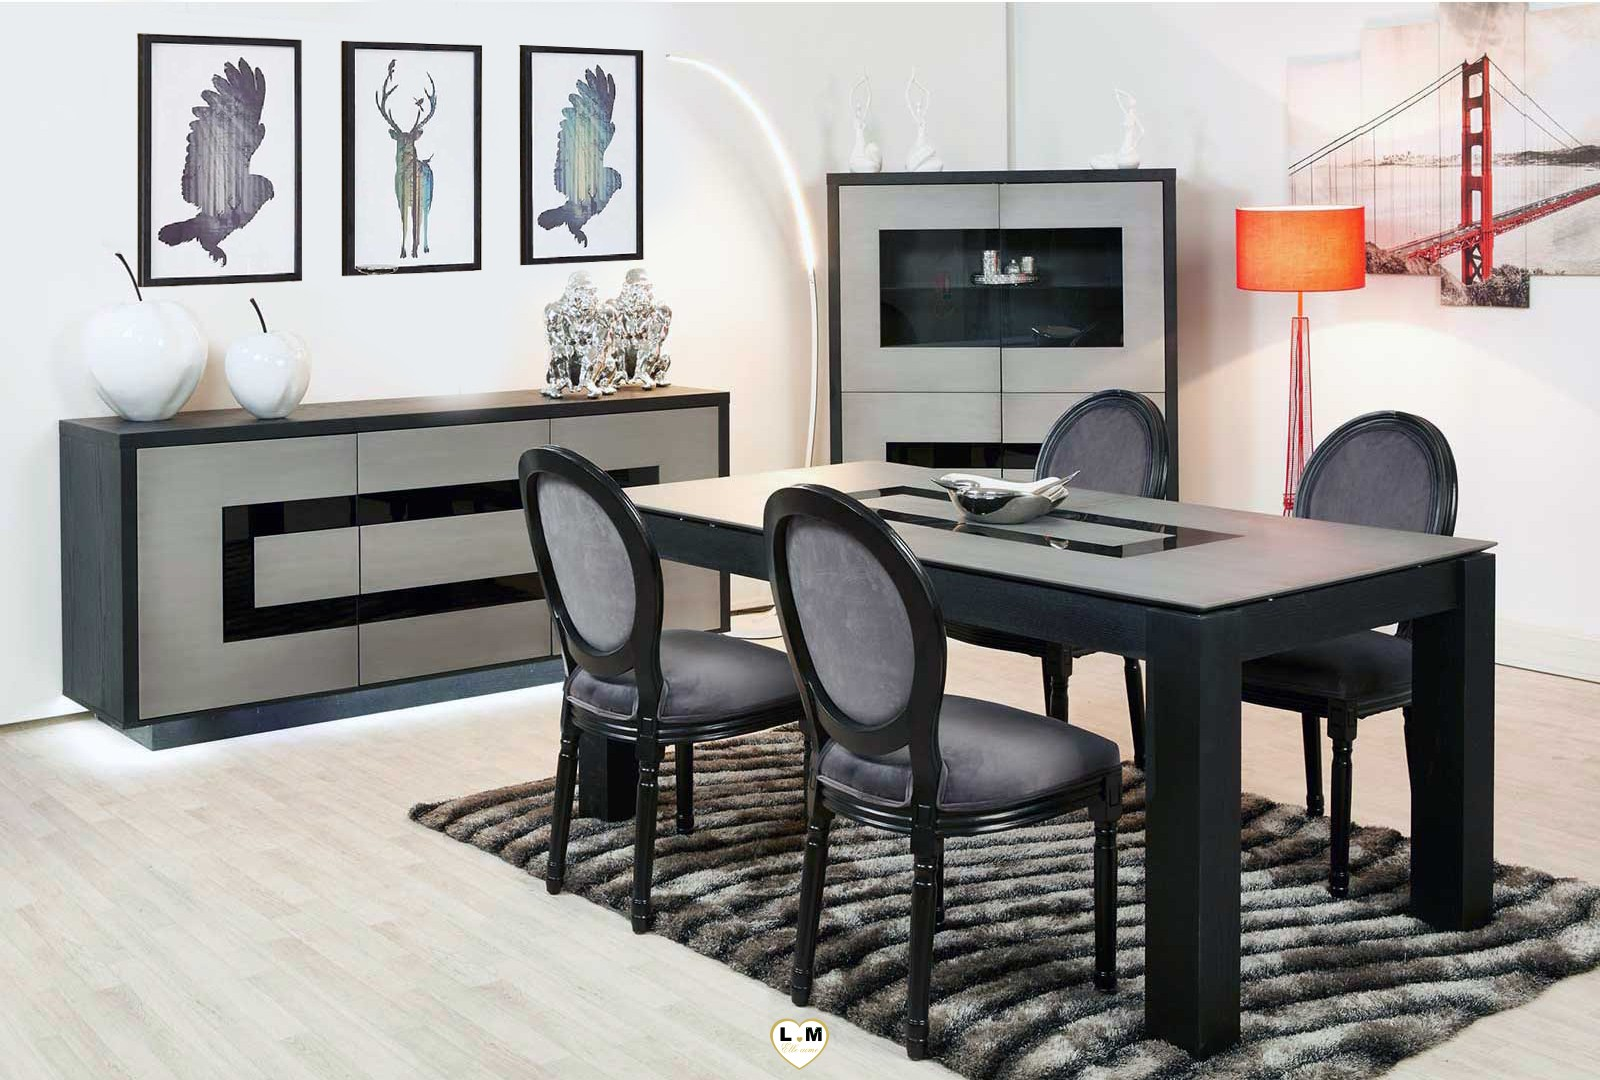 spitfire composition ensemble meuble sejour salle a manger. Black Bedroom Furniture Sets. Home Design Ideas